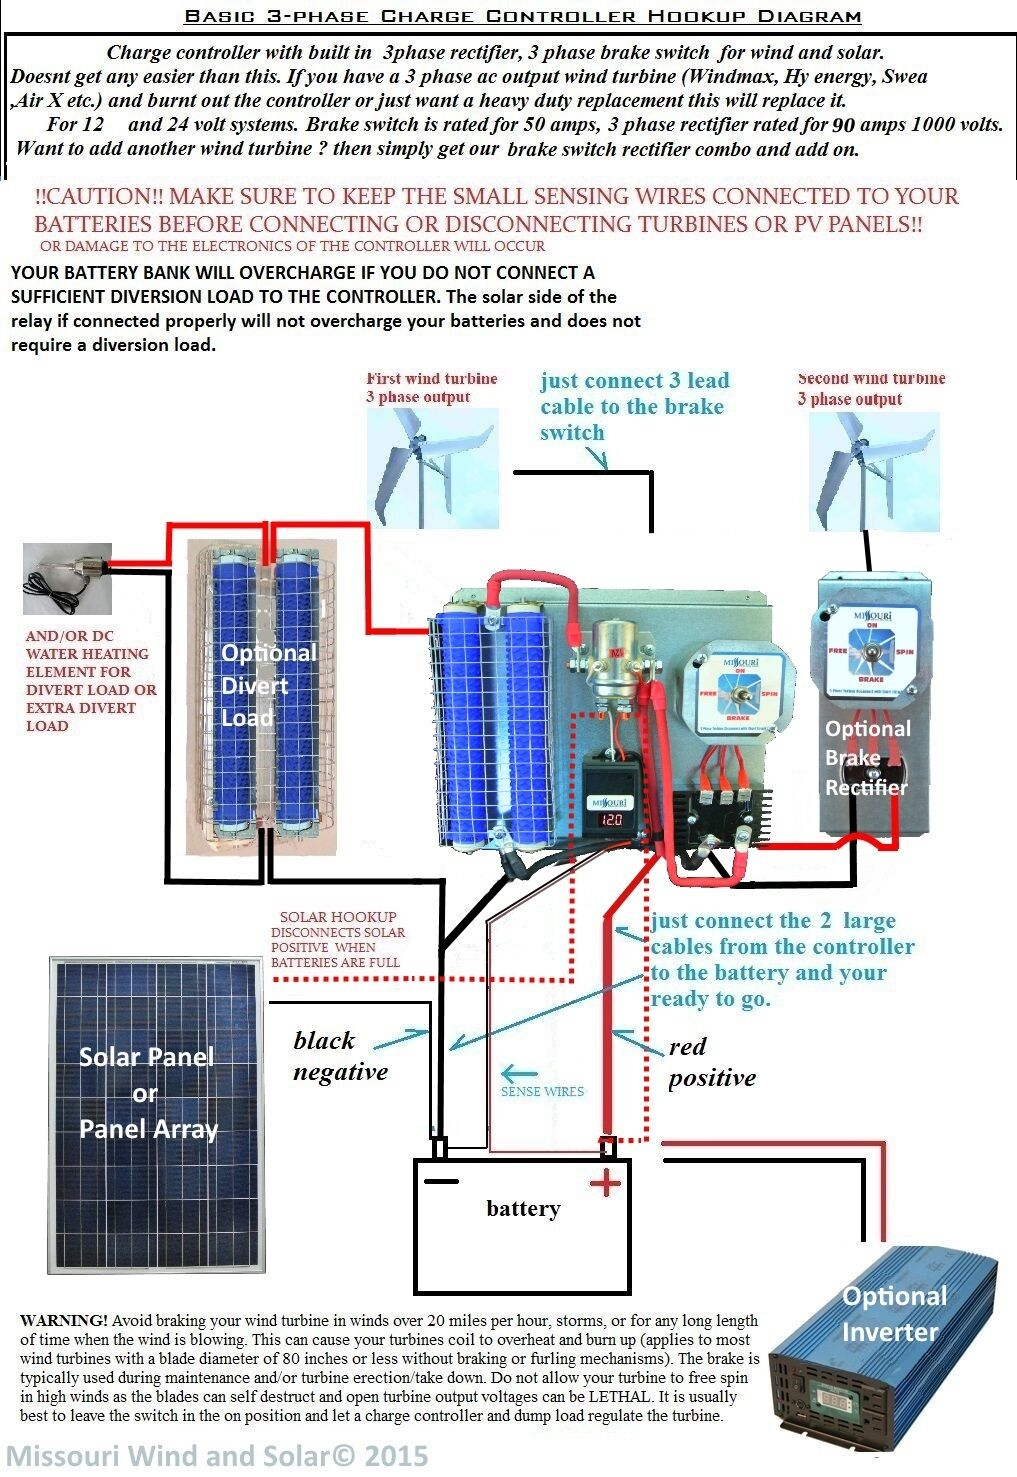 Missouri Wind and Solar. Brake switch diagram